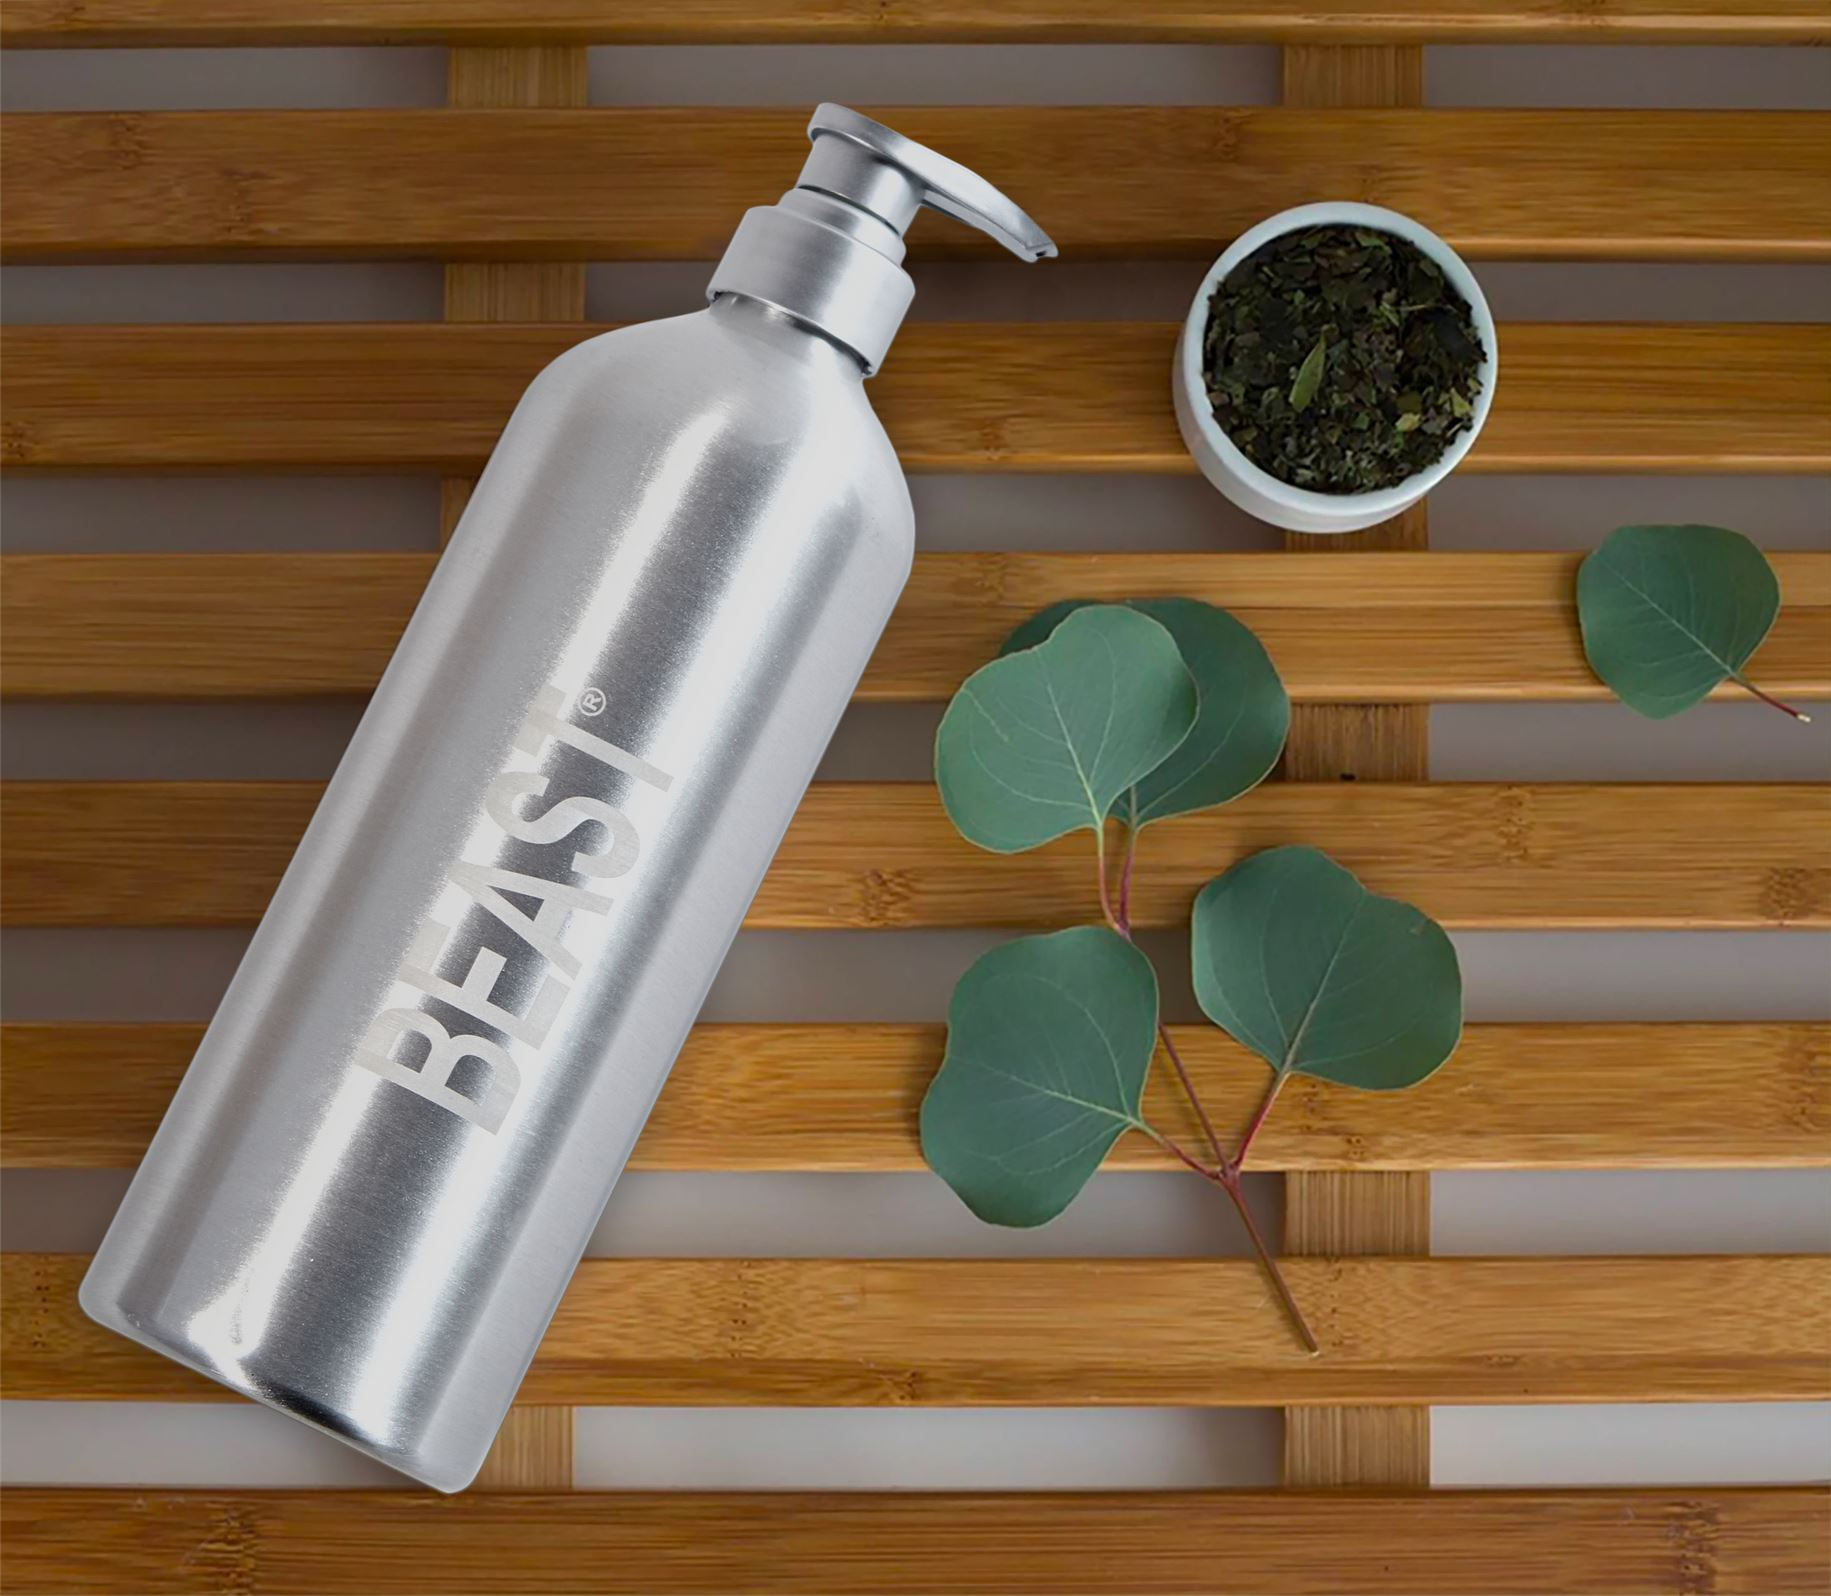 The reusable bottle by Beast made from recycled products.